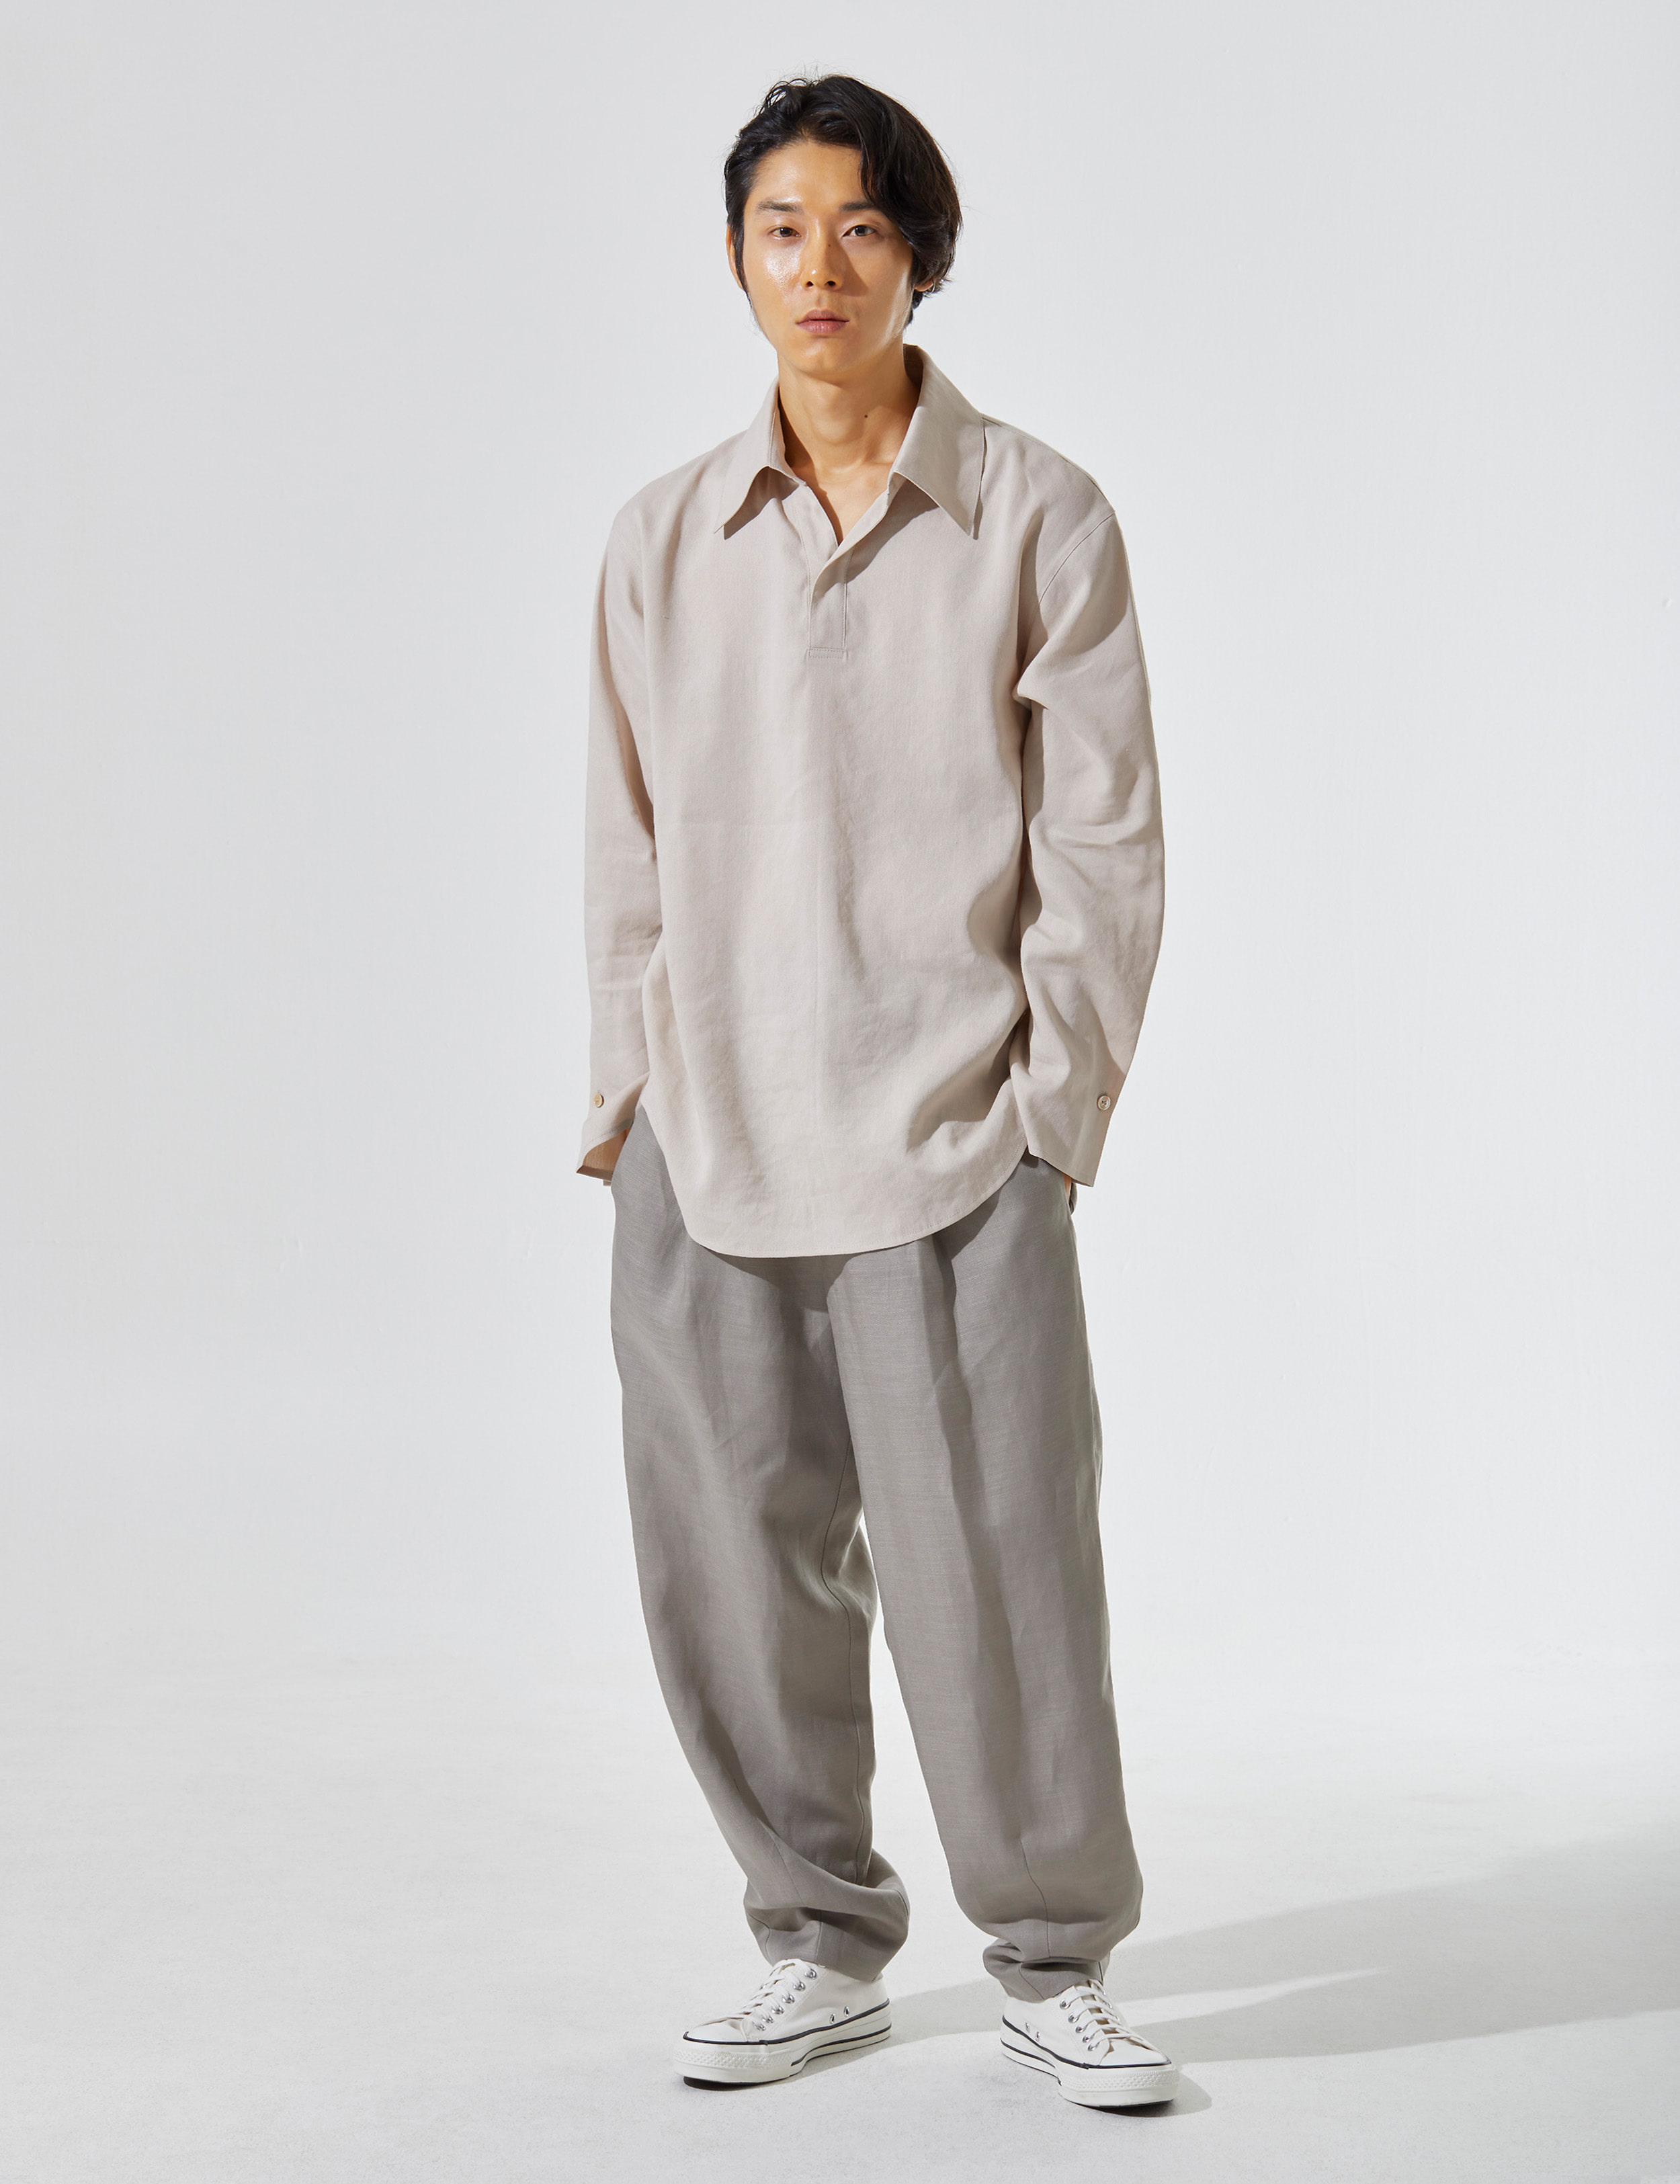 N.7 Waist wide pants Khaki gray